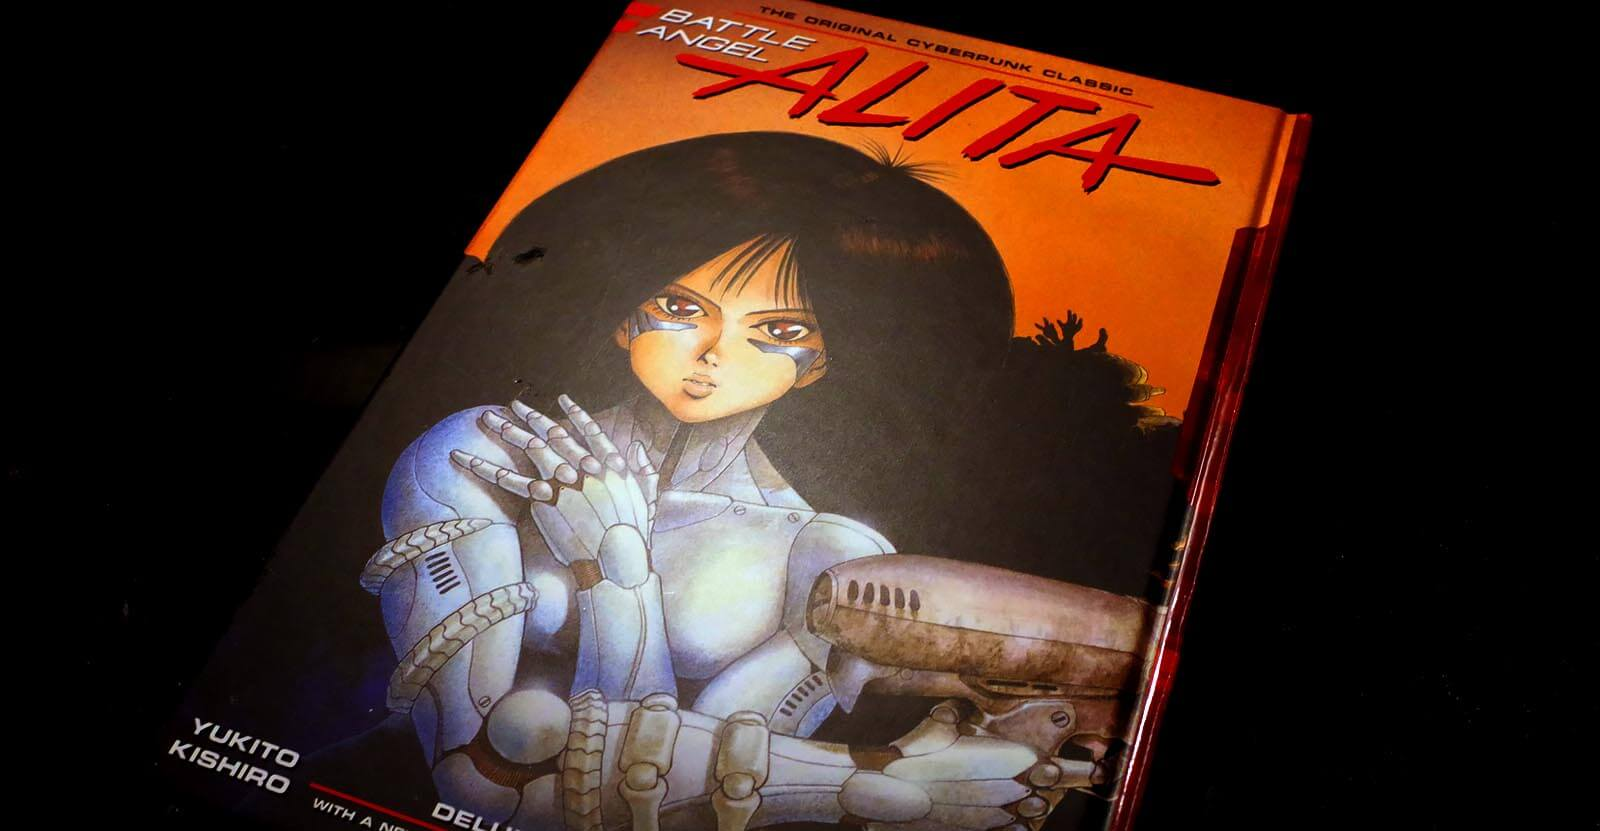 Battle Angel Alita Vol 1 Book Cover